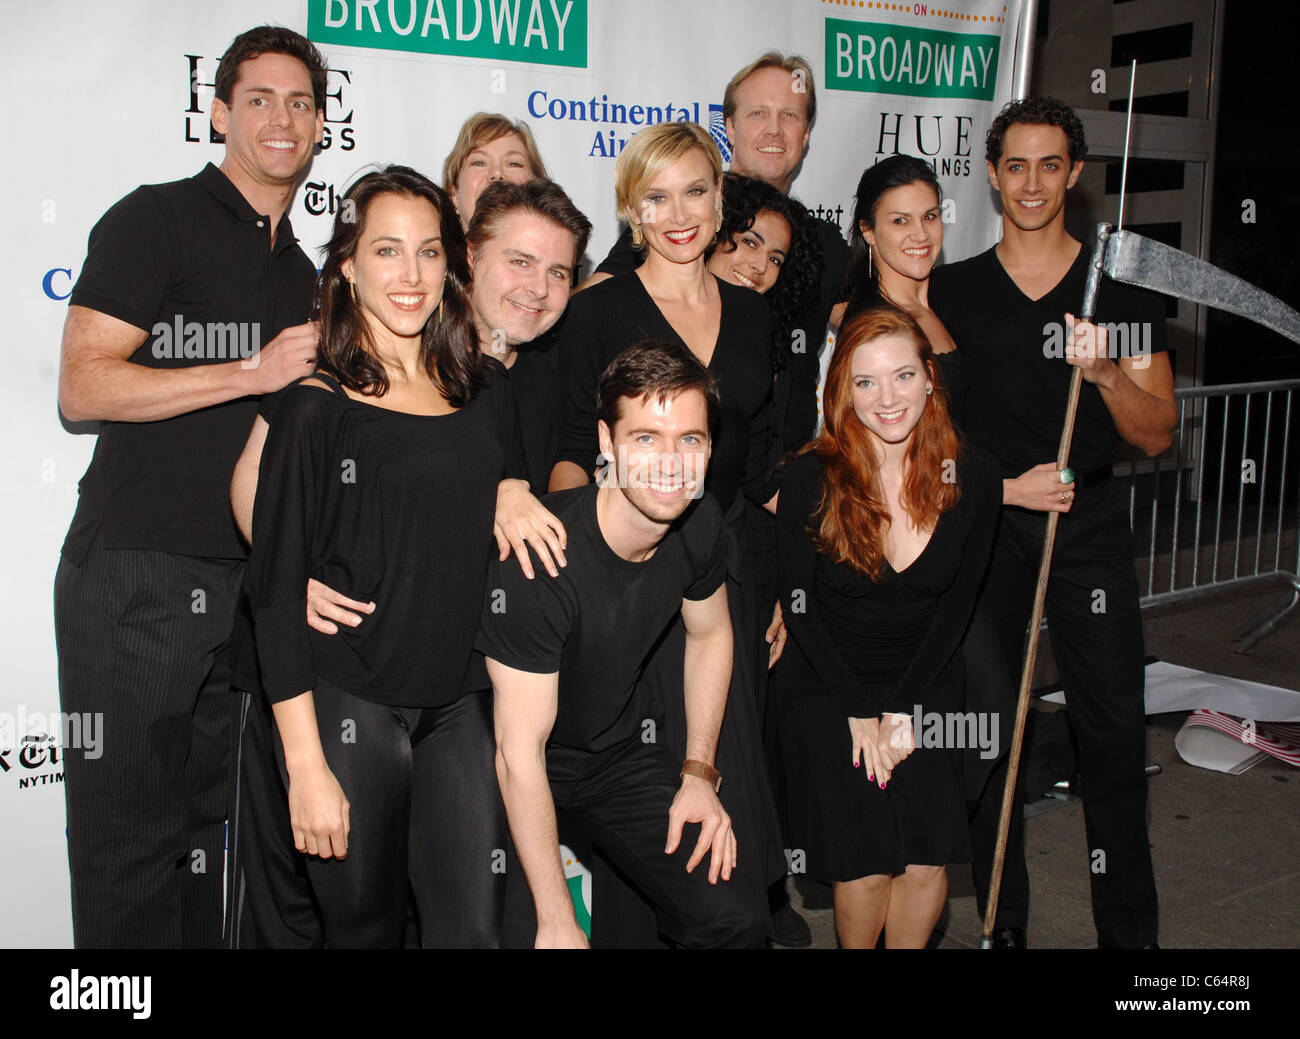 Cast members from The Adams Family in attendance for Broadway on Broadway 2010 Concert Kick-Off, Times Square, New - Stock Image